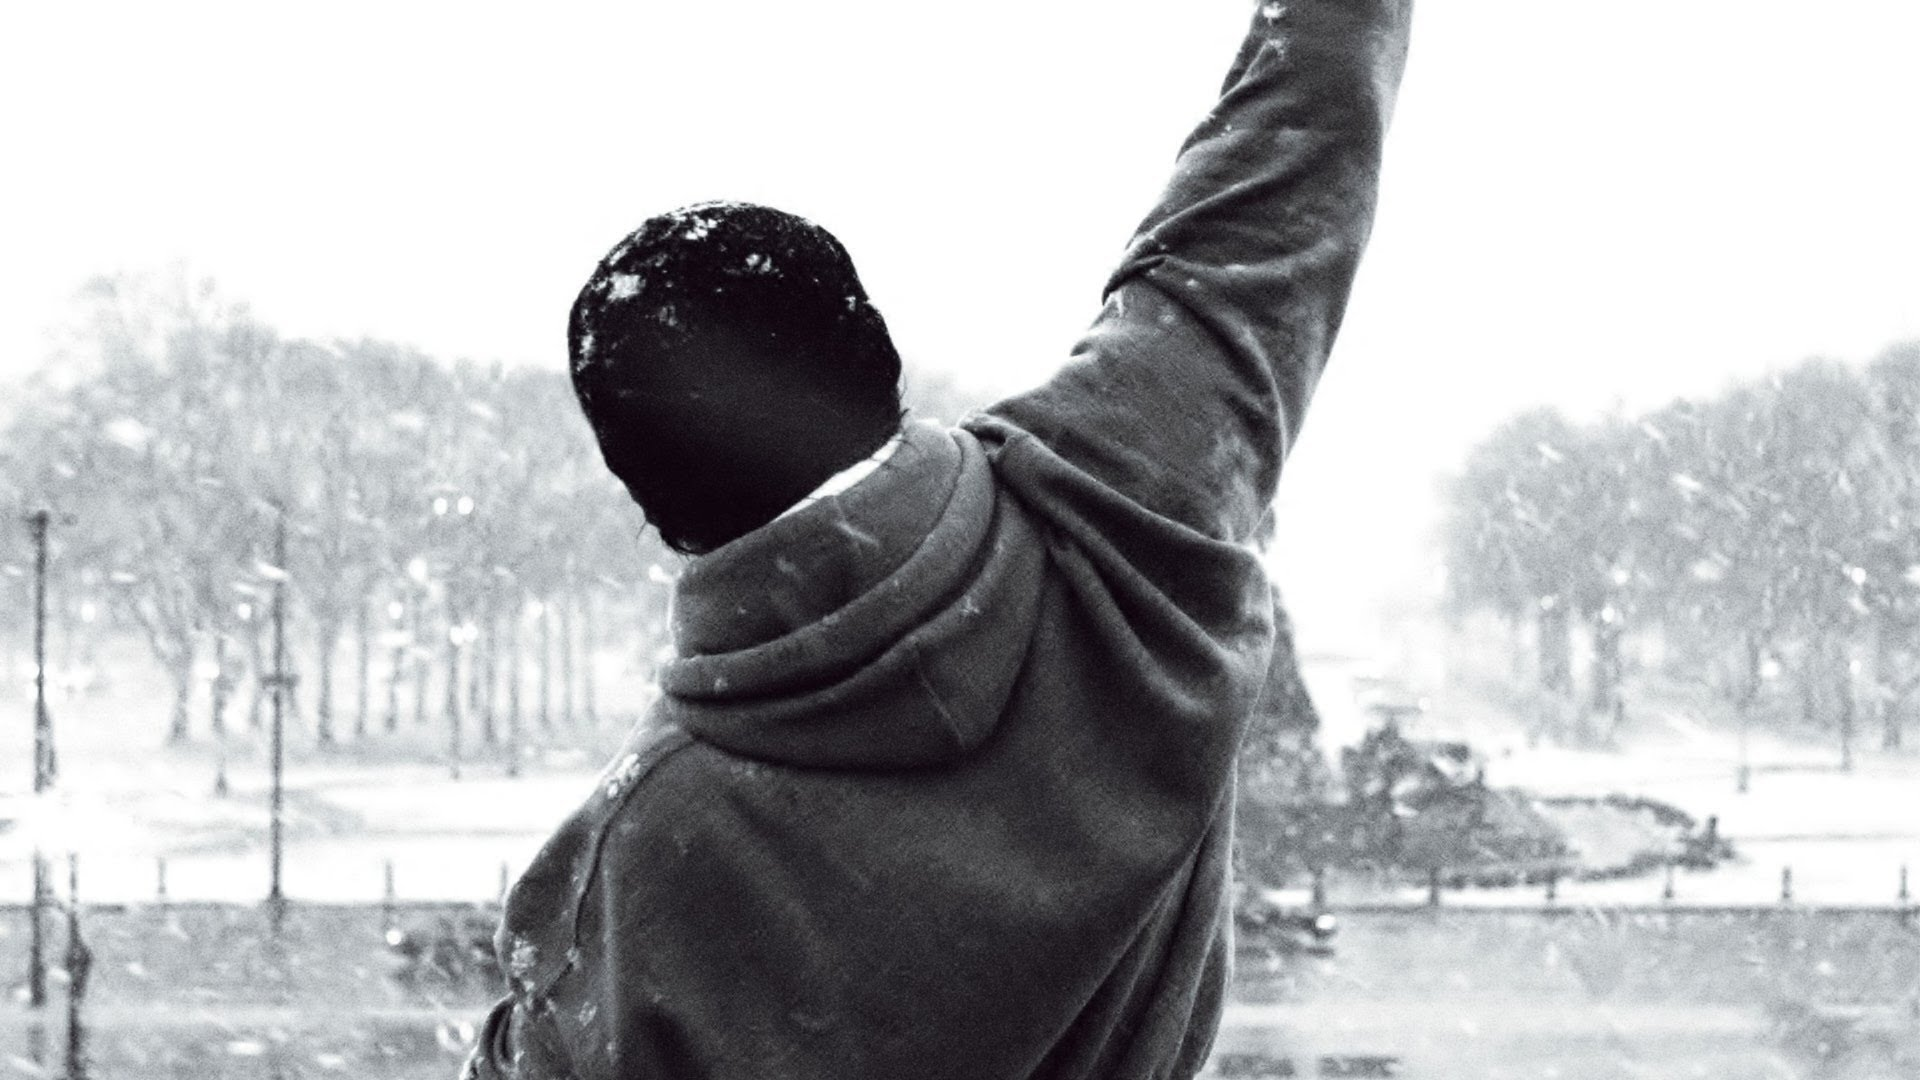 LXP - Lifexpe - Sylvester Stallone Rocky Why Do We Fall, Why Do We Fail Motivation Motivational